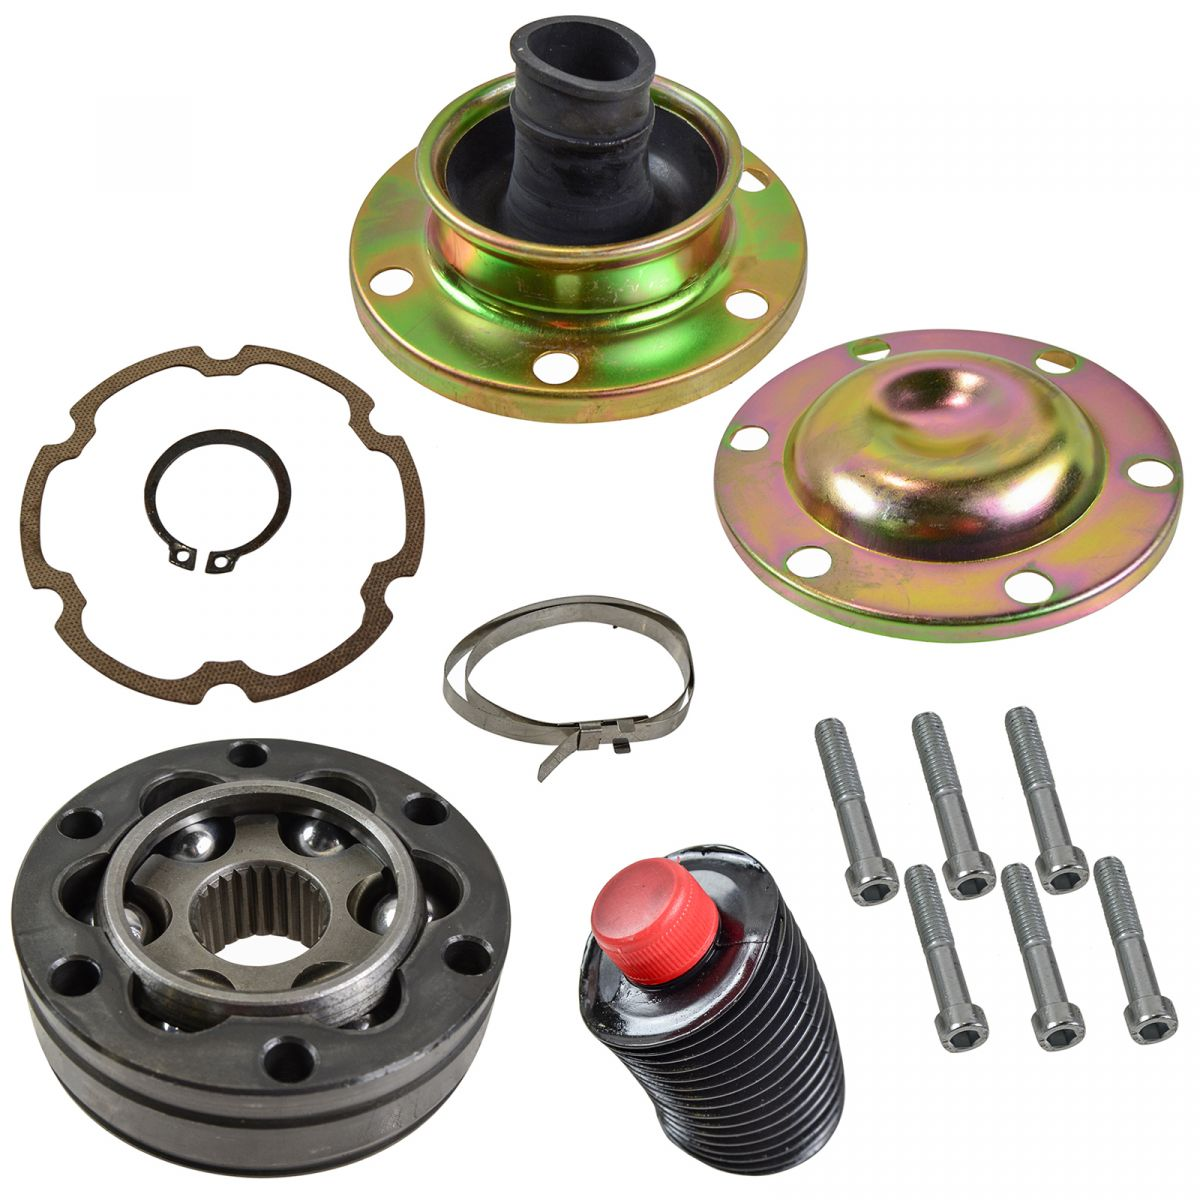 For Jeep Wrangler 2000 2006 Replace 2a34 Remanufactured: Front Driveshaft Rear CV Joint Rebuild Kit For Jeep